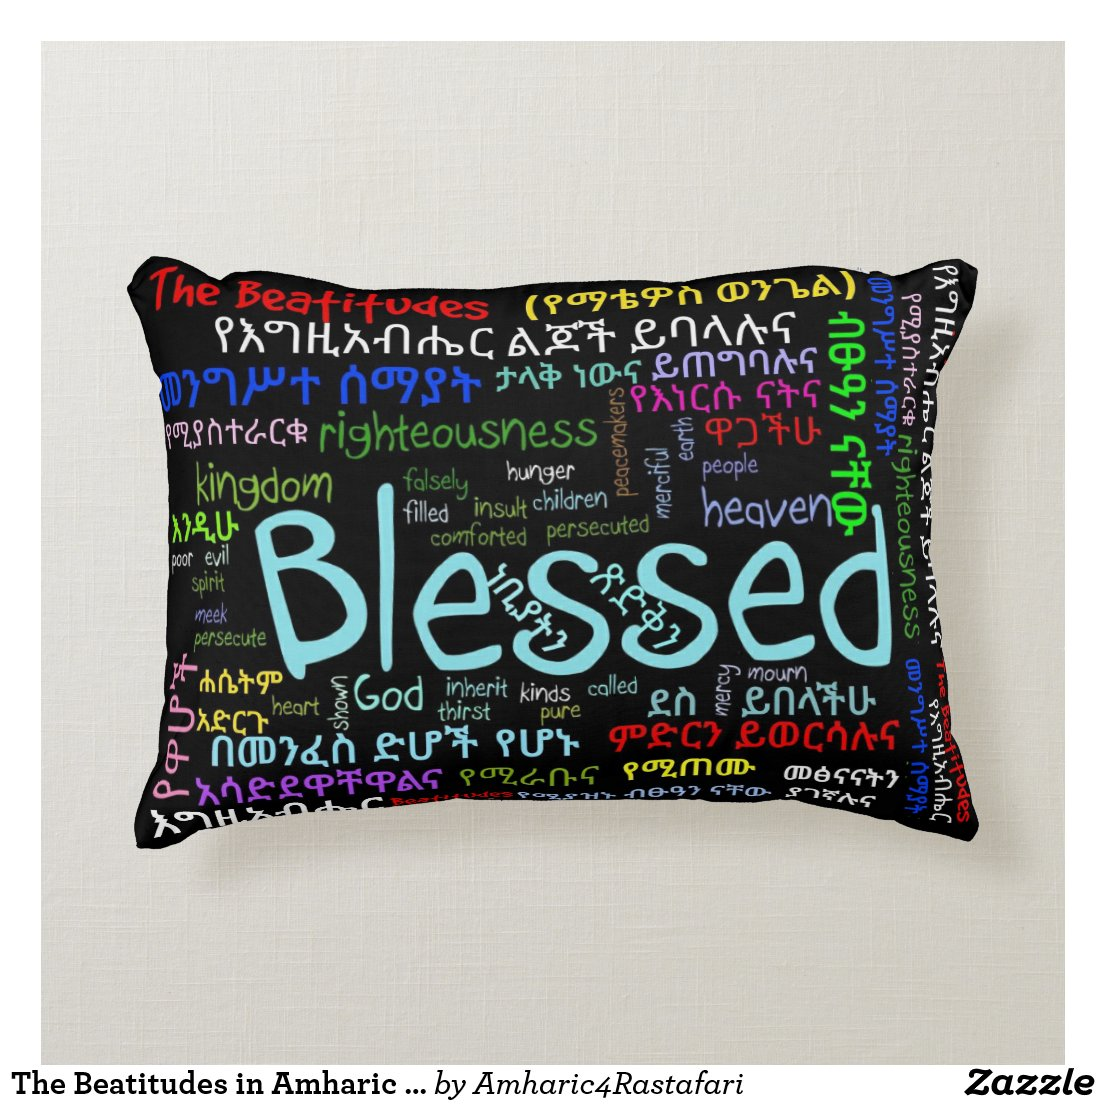 The Beatitudes in Amharic - Matthew 5v3-11 Pillow